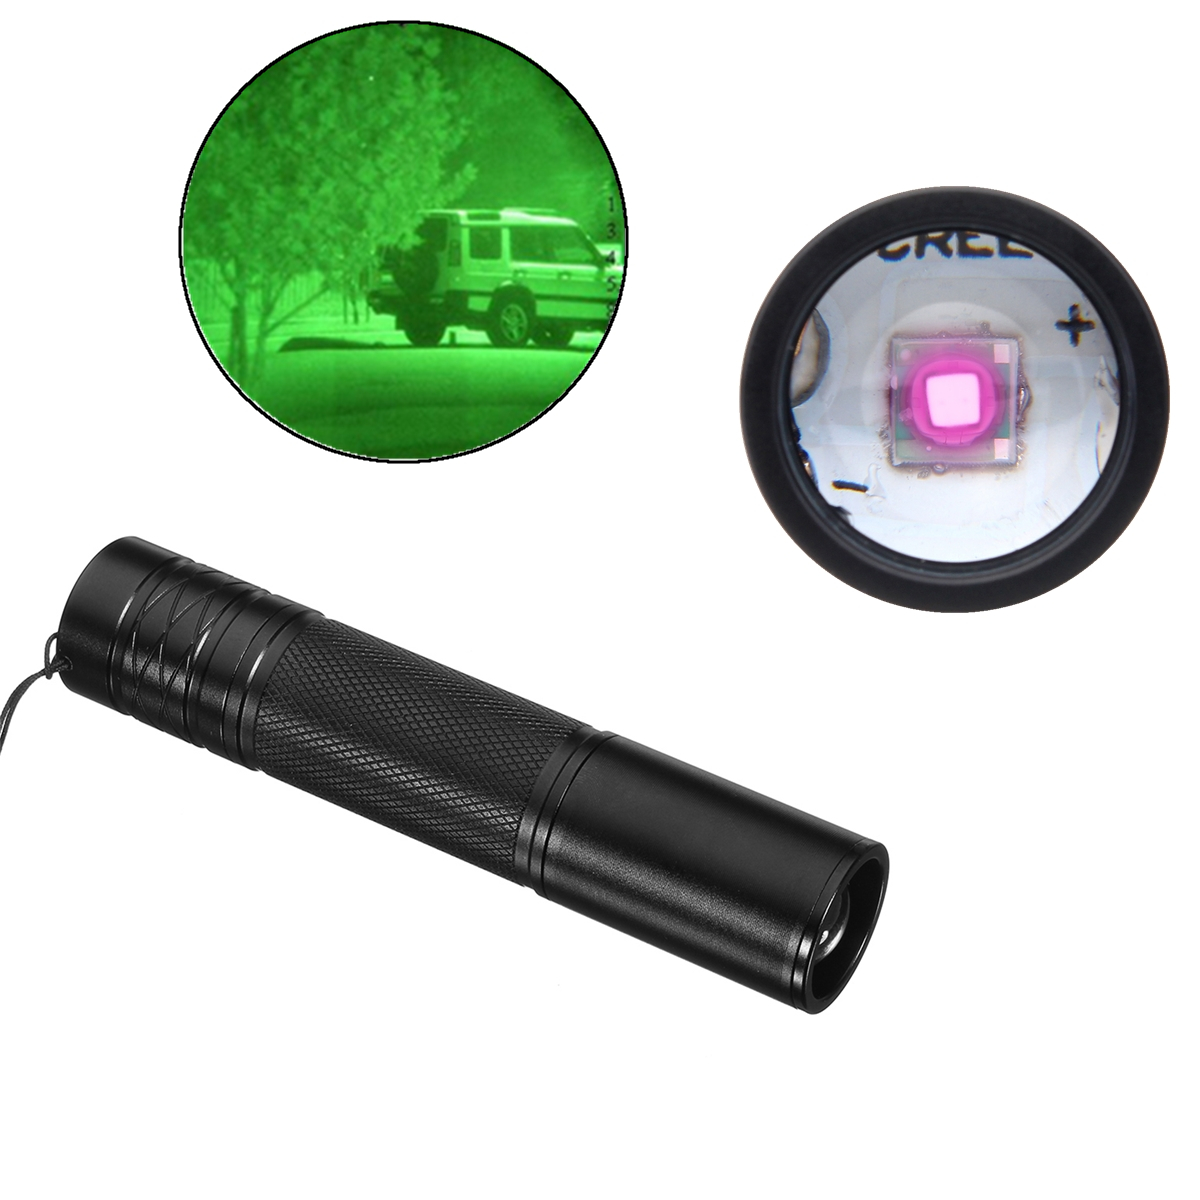 5W 850nm Infrared IR LED Flashlight Zoomable Night Vision Scope Outdoor Torch